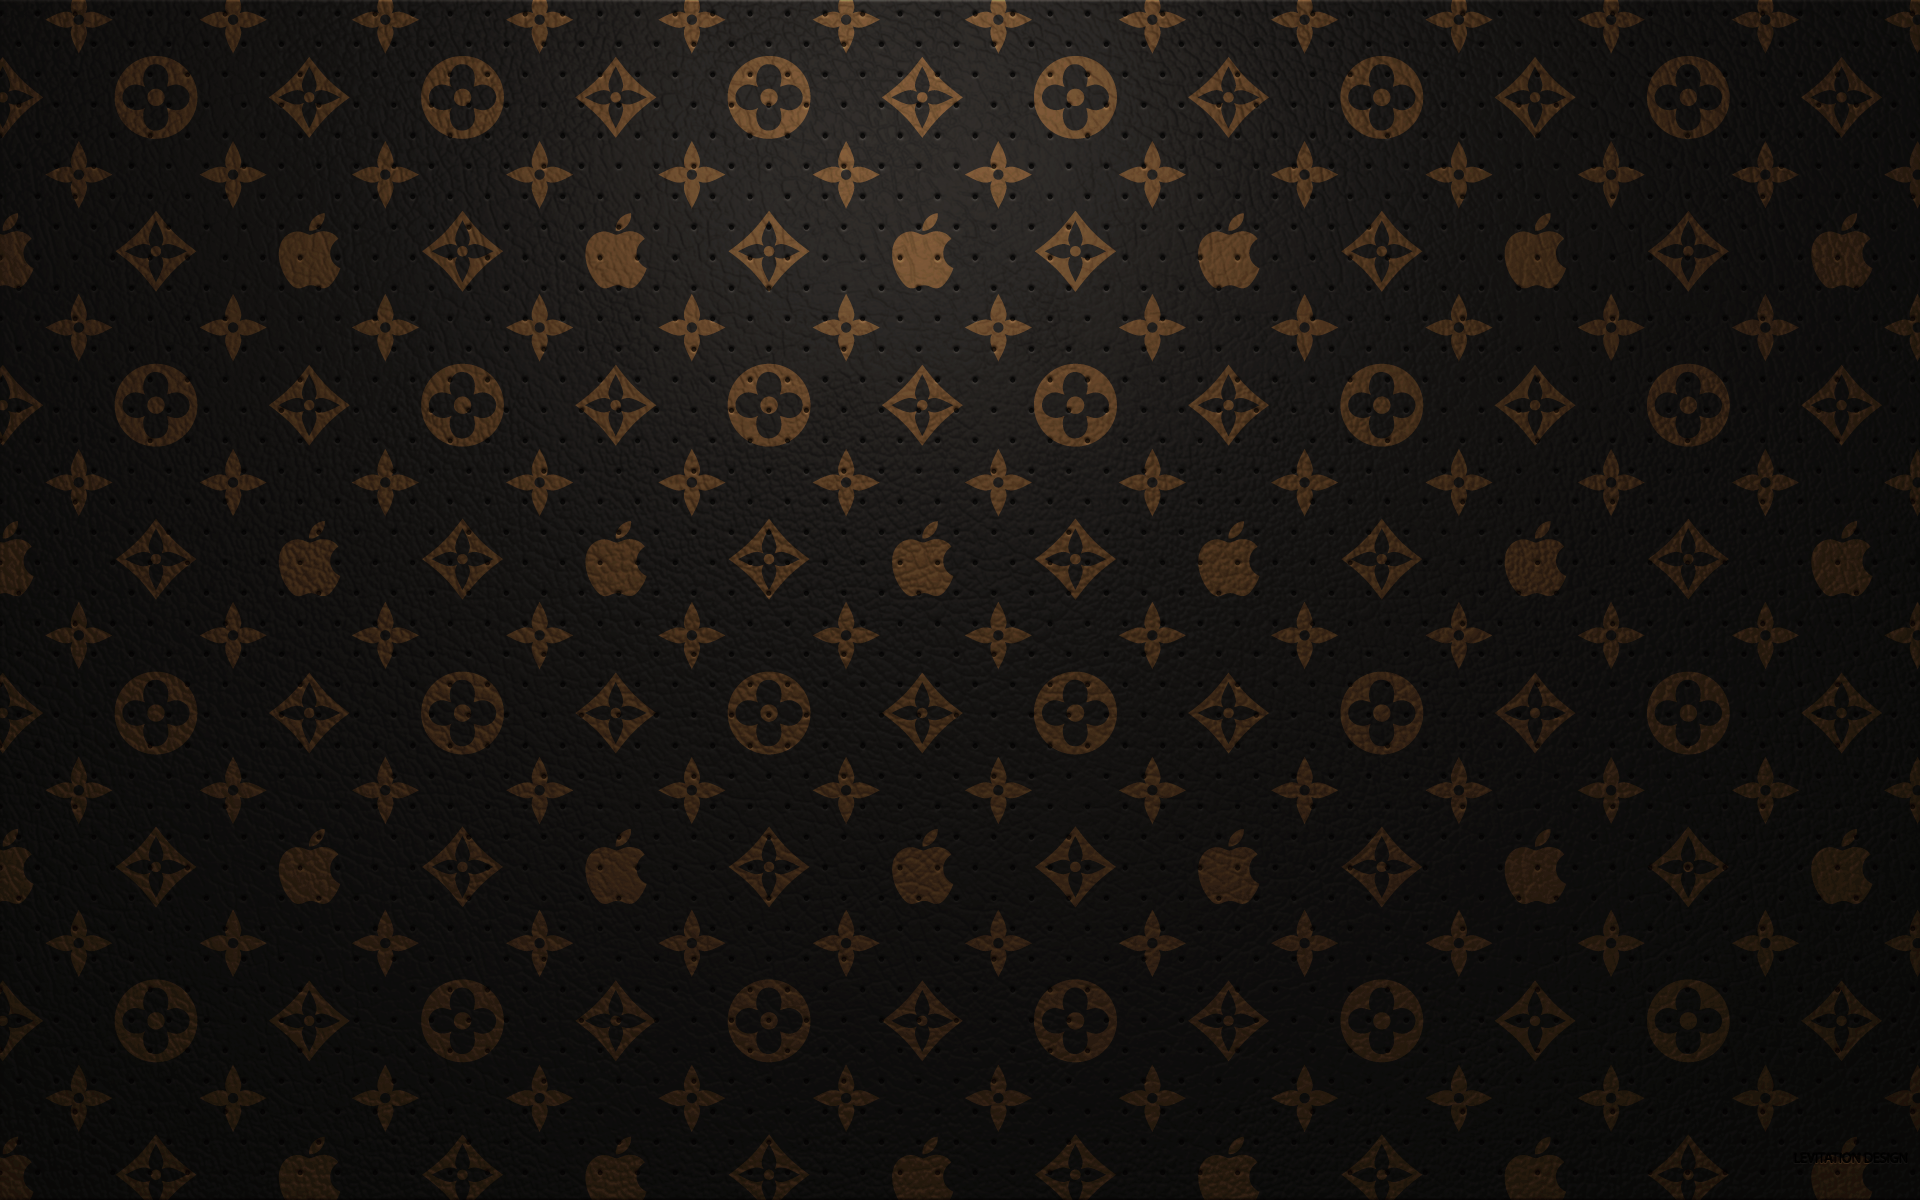 Free Download Louis Vuitton Wallpapers Hd 1920x1200 For Your